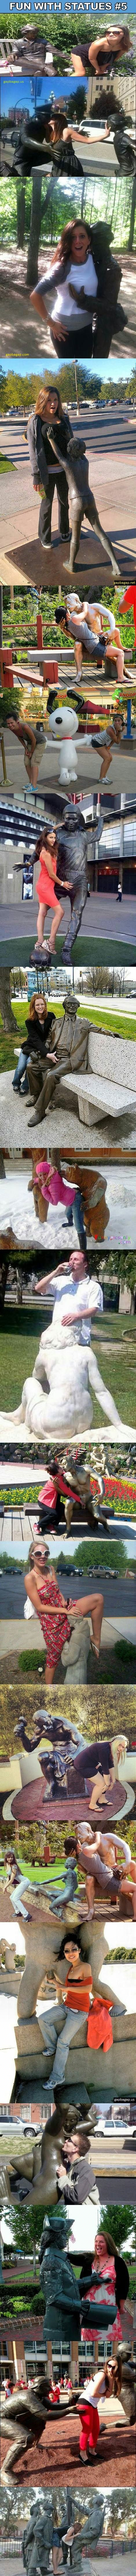 Top 20 Funniest Pictures Of People Having Fun With Statues